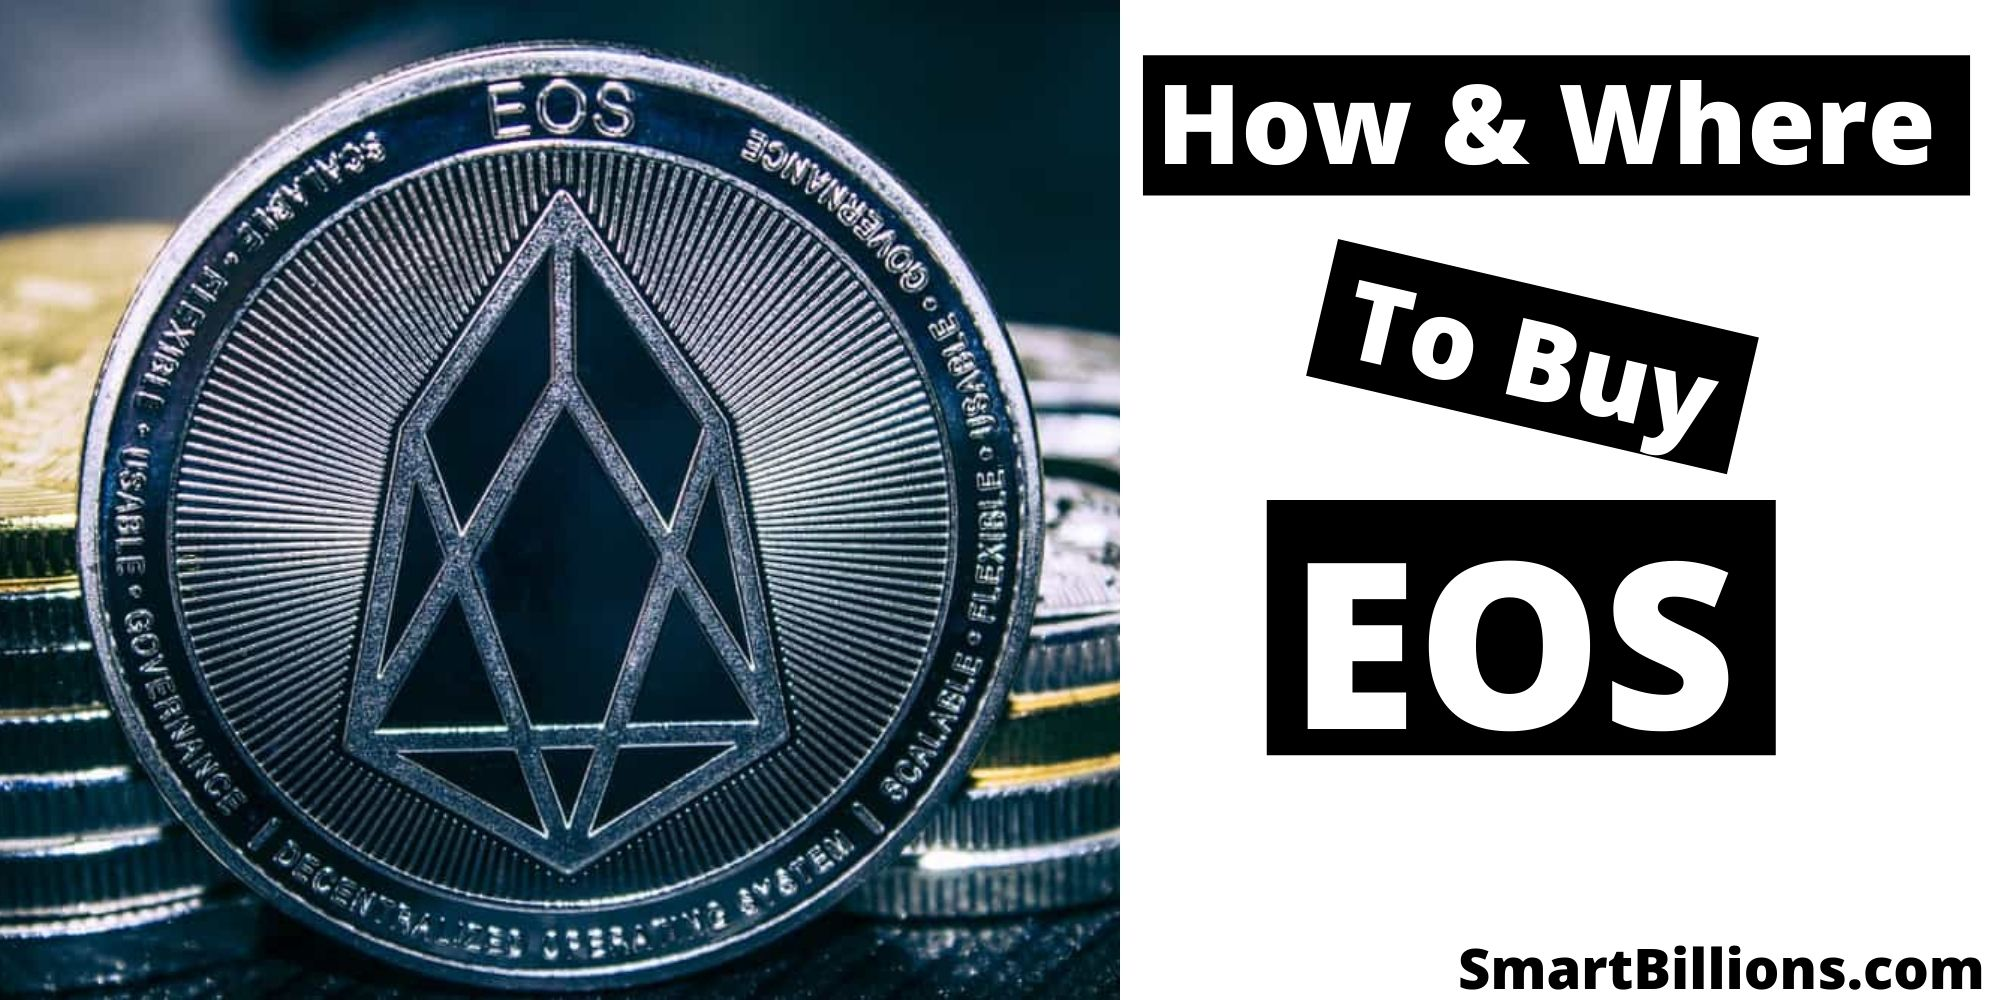 how & where to by eos